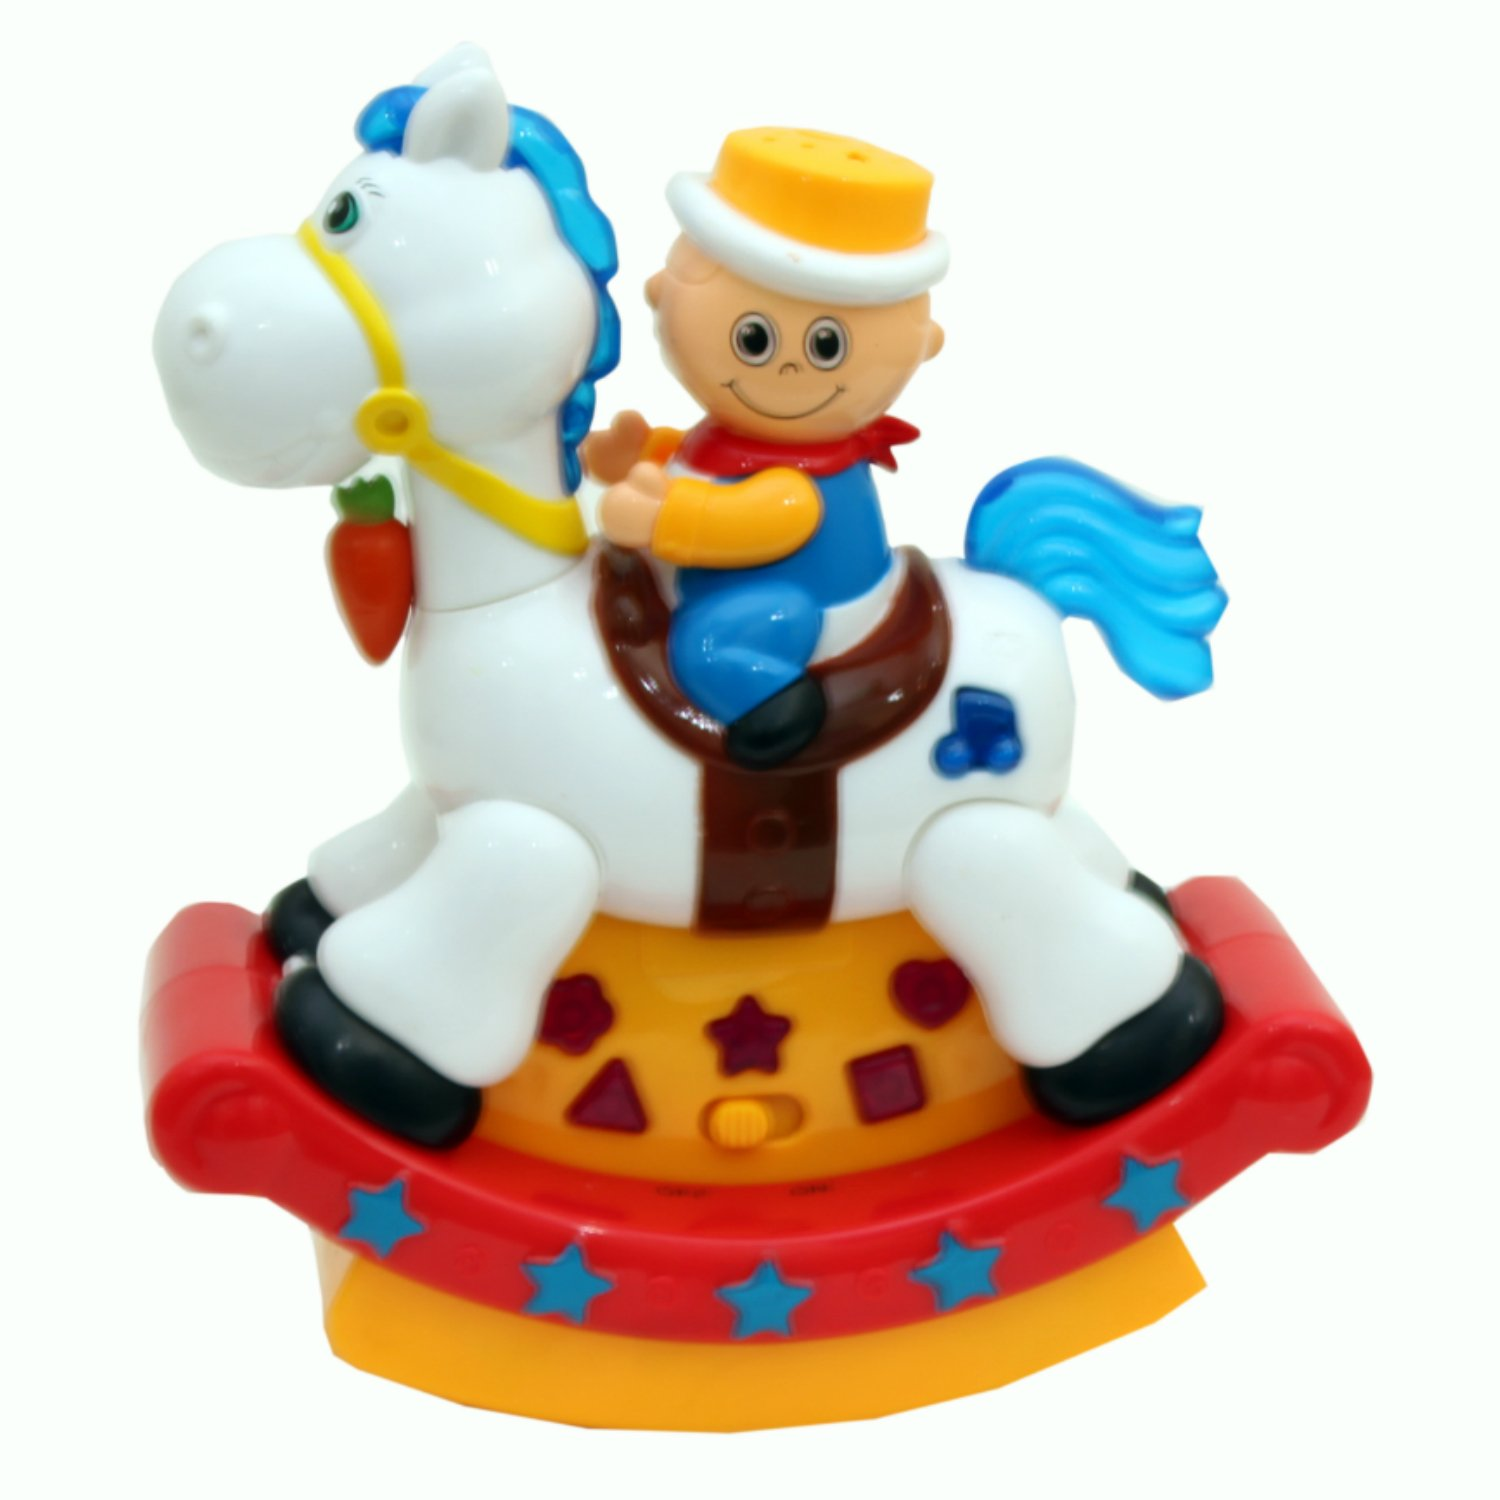 Buy HANDA Musical Swing Hobby Horse Toy with Unique Light